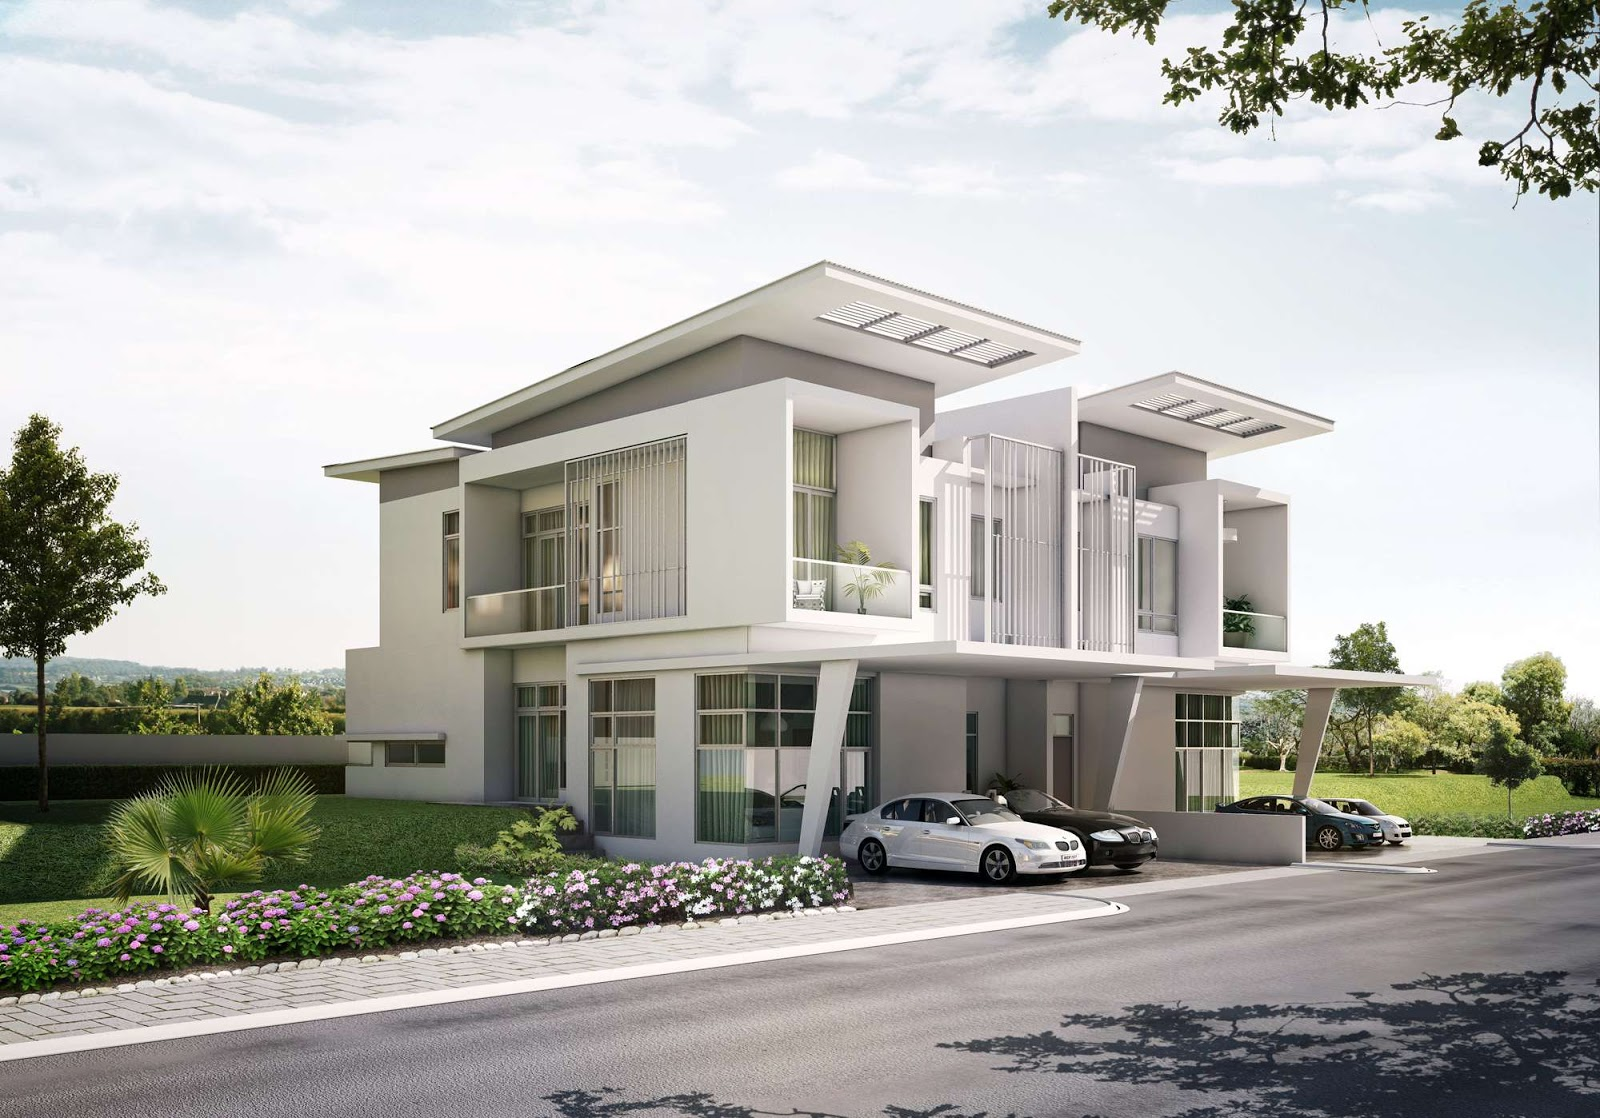 New home designs latest singapore modern homes exterior for House exterior ideas